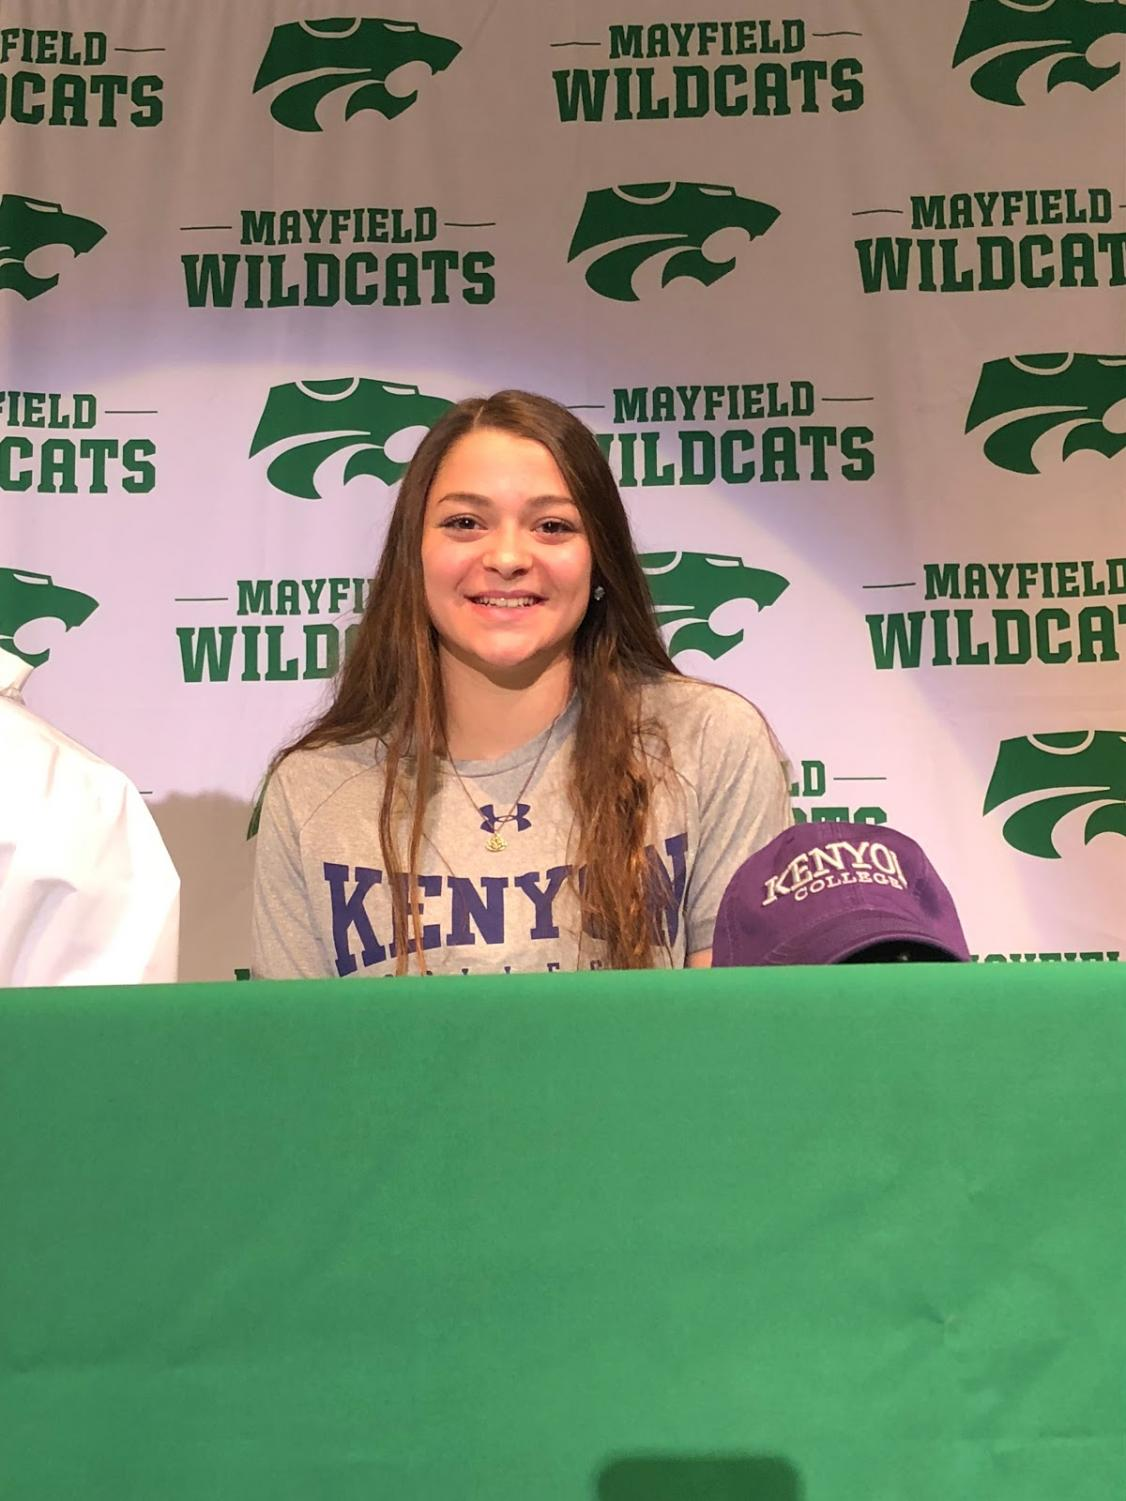 Senior Gianna Ferrante, a four-time state qualifier in swimming, officially committed to Kenyon College this week.  Principal Jeff Legan referred to Ferrante as